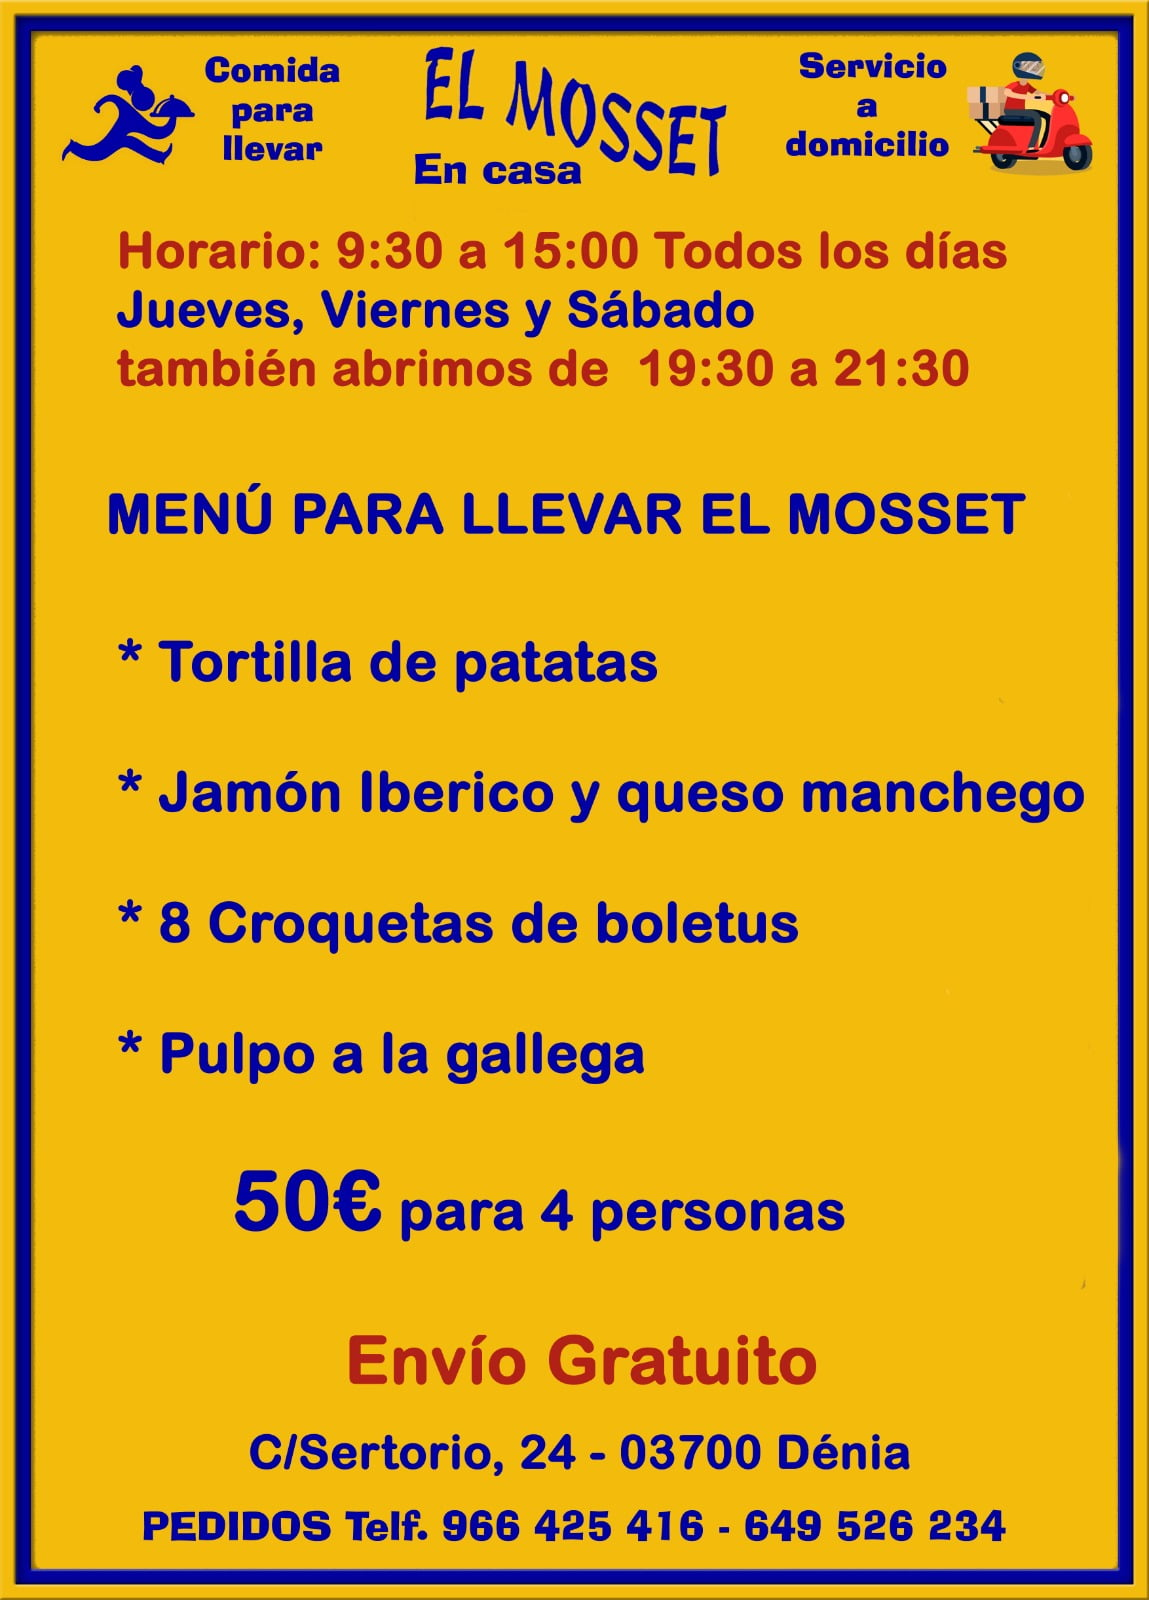 El Mosset take away menu